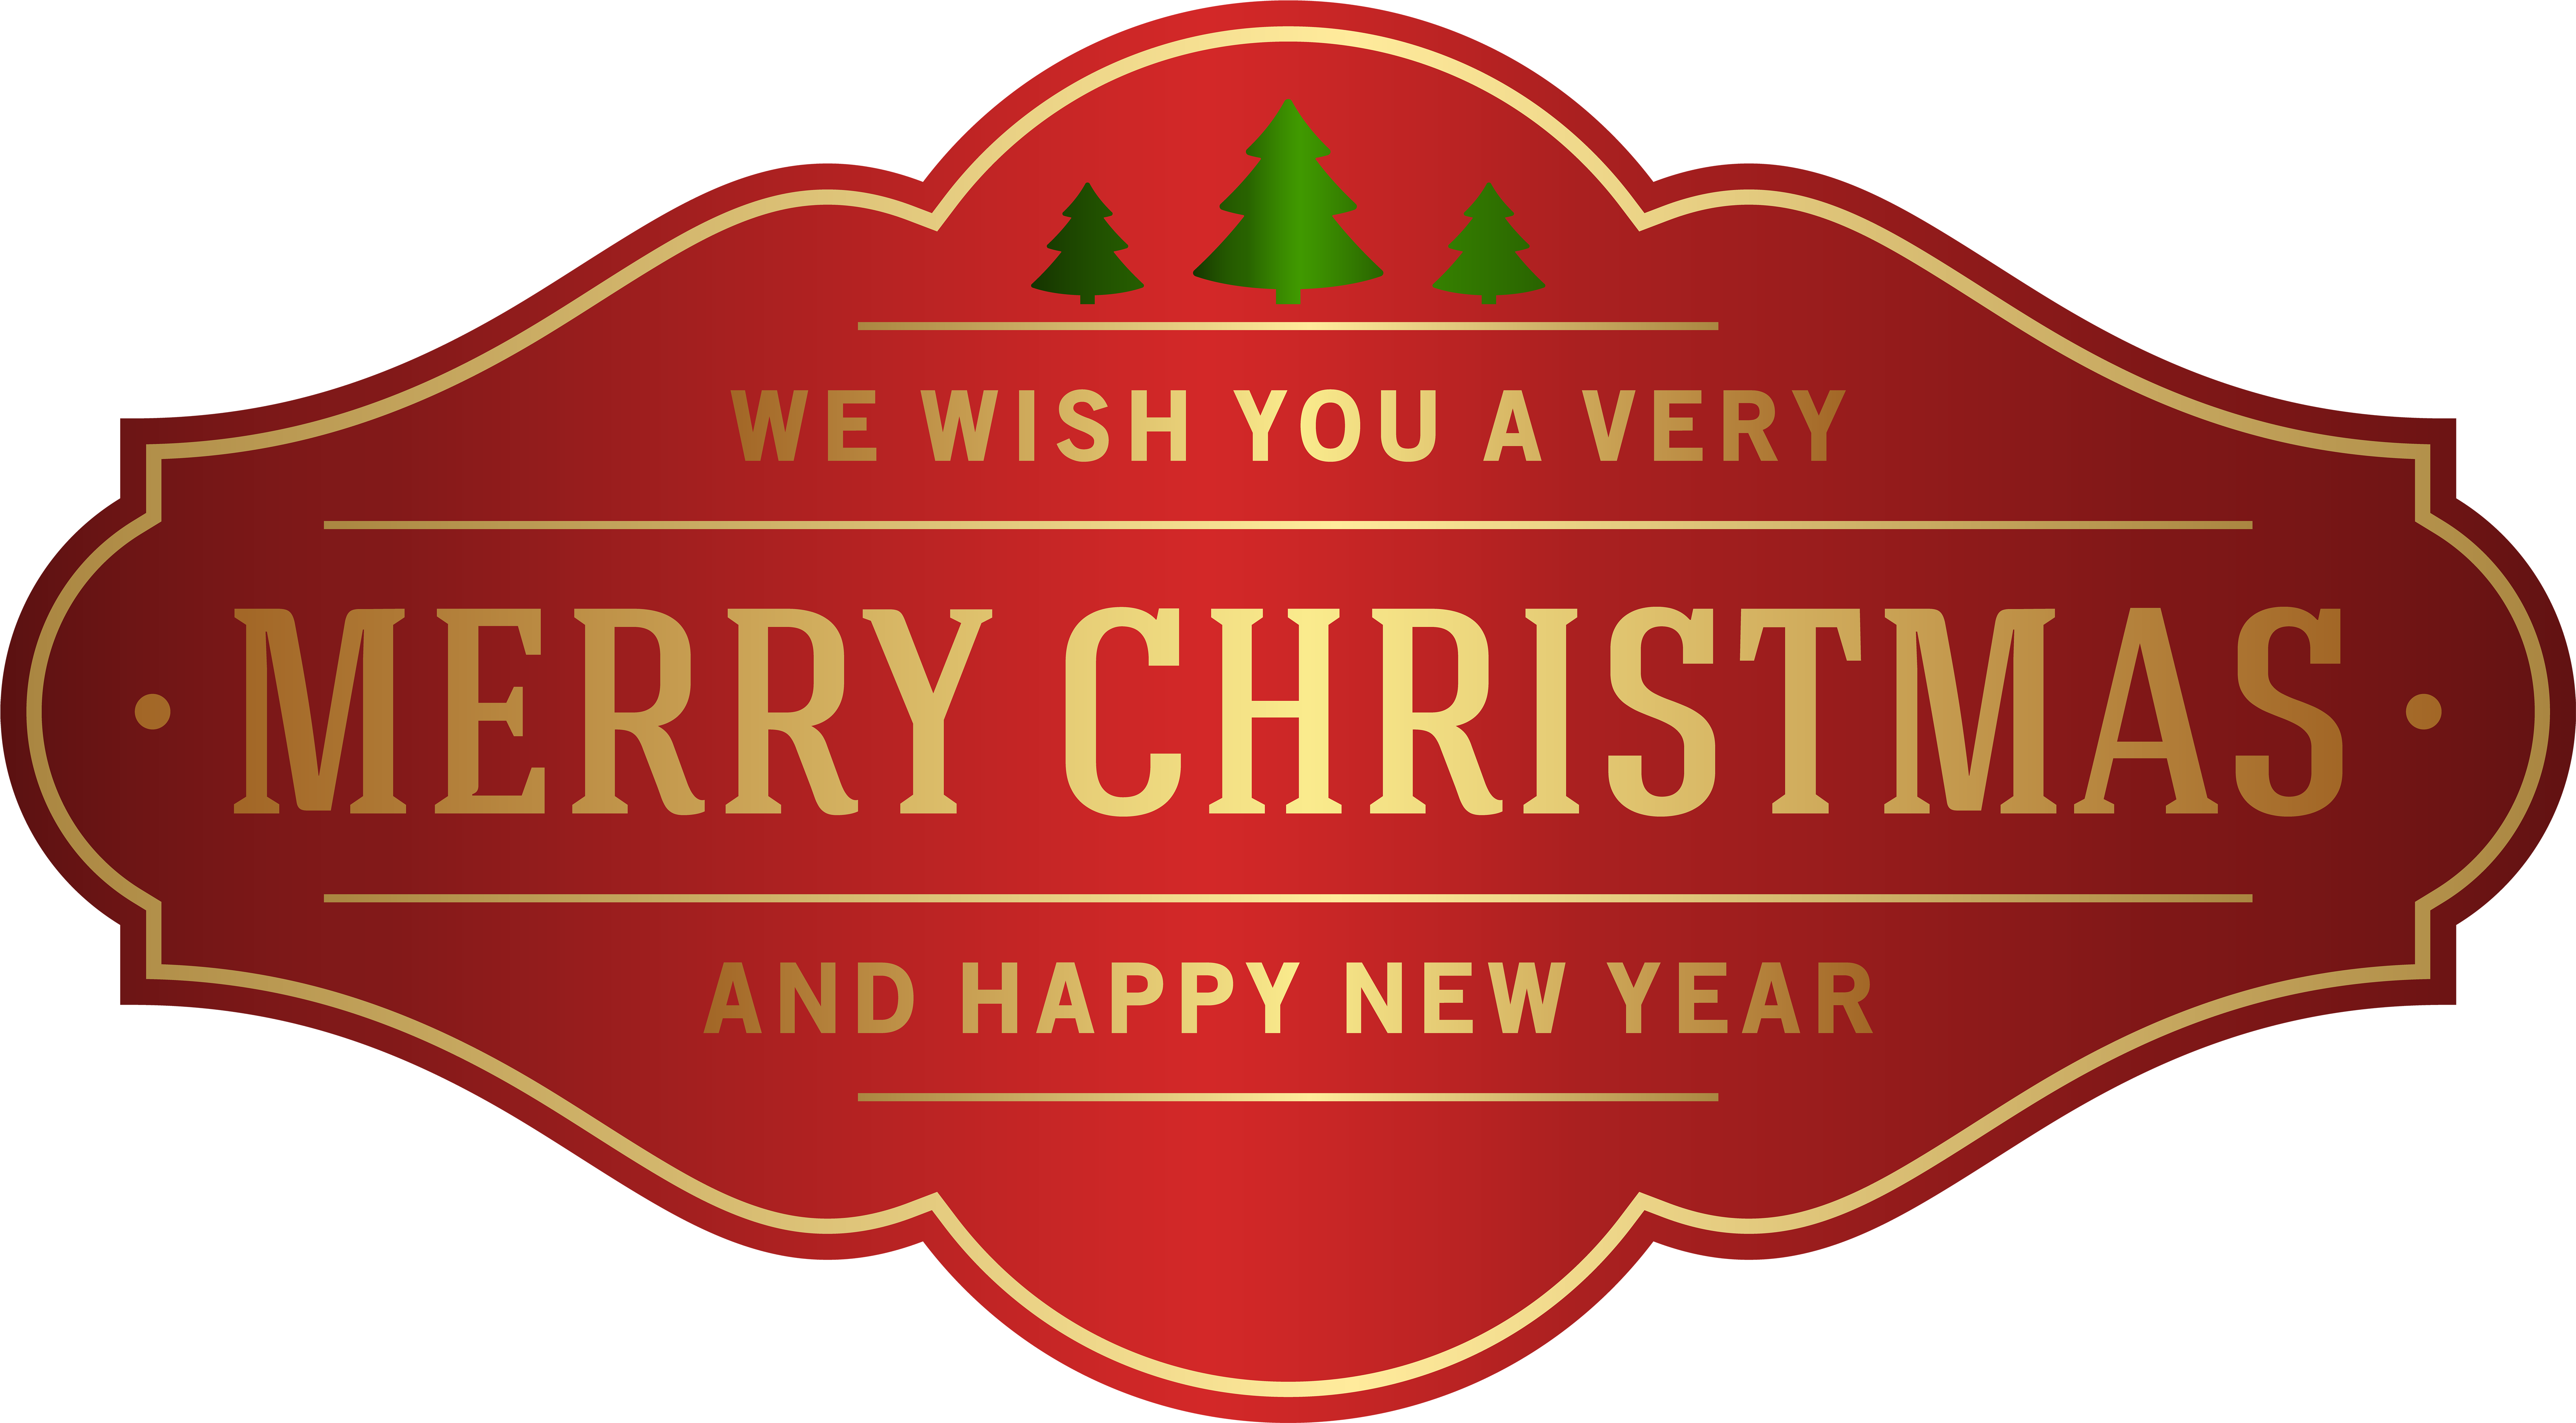 HD A Very Merry Christmas Clip Art With We Wish You Banner.